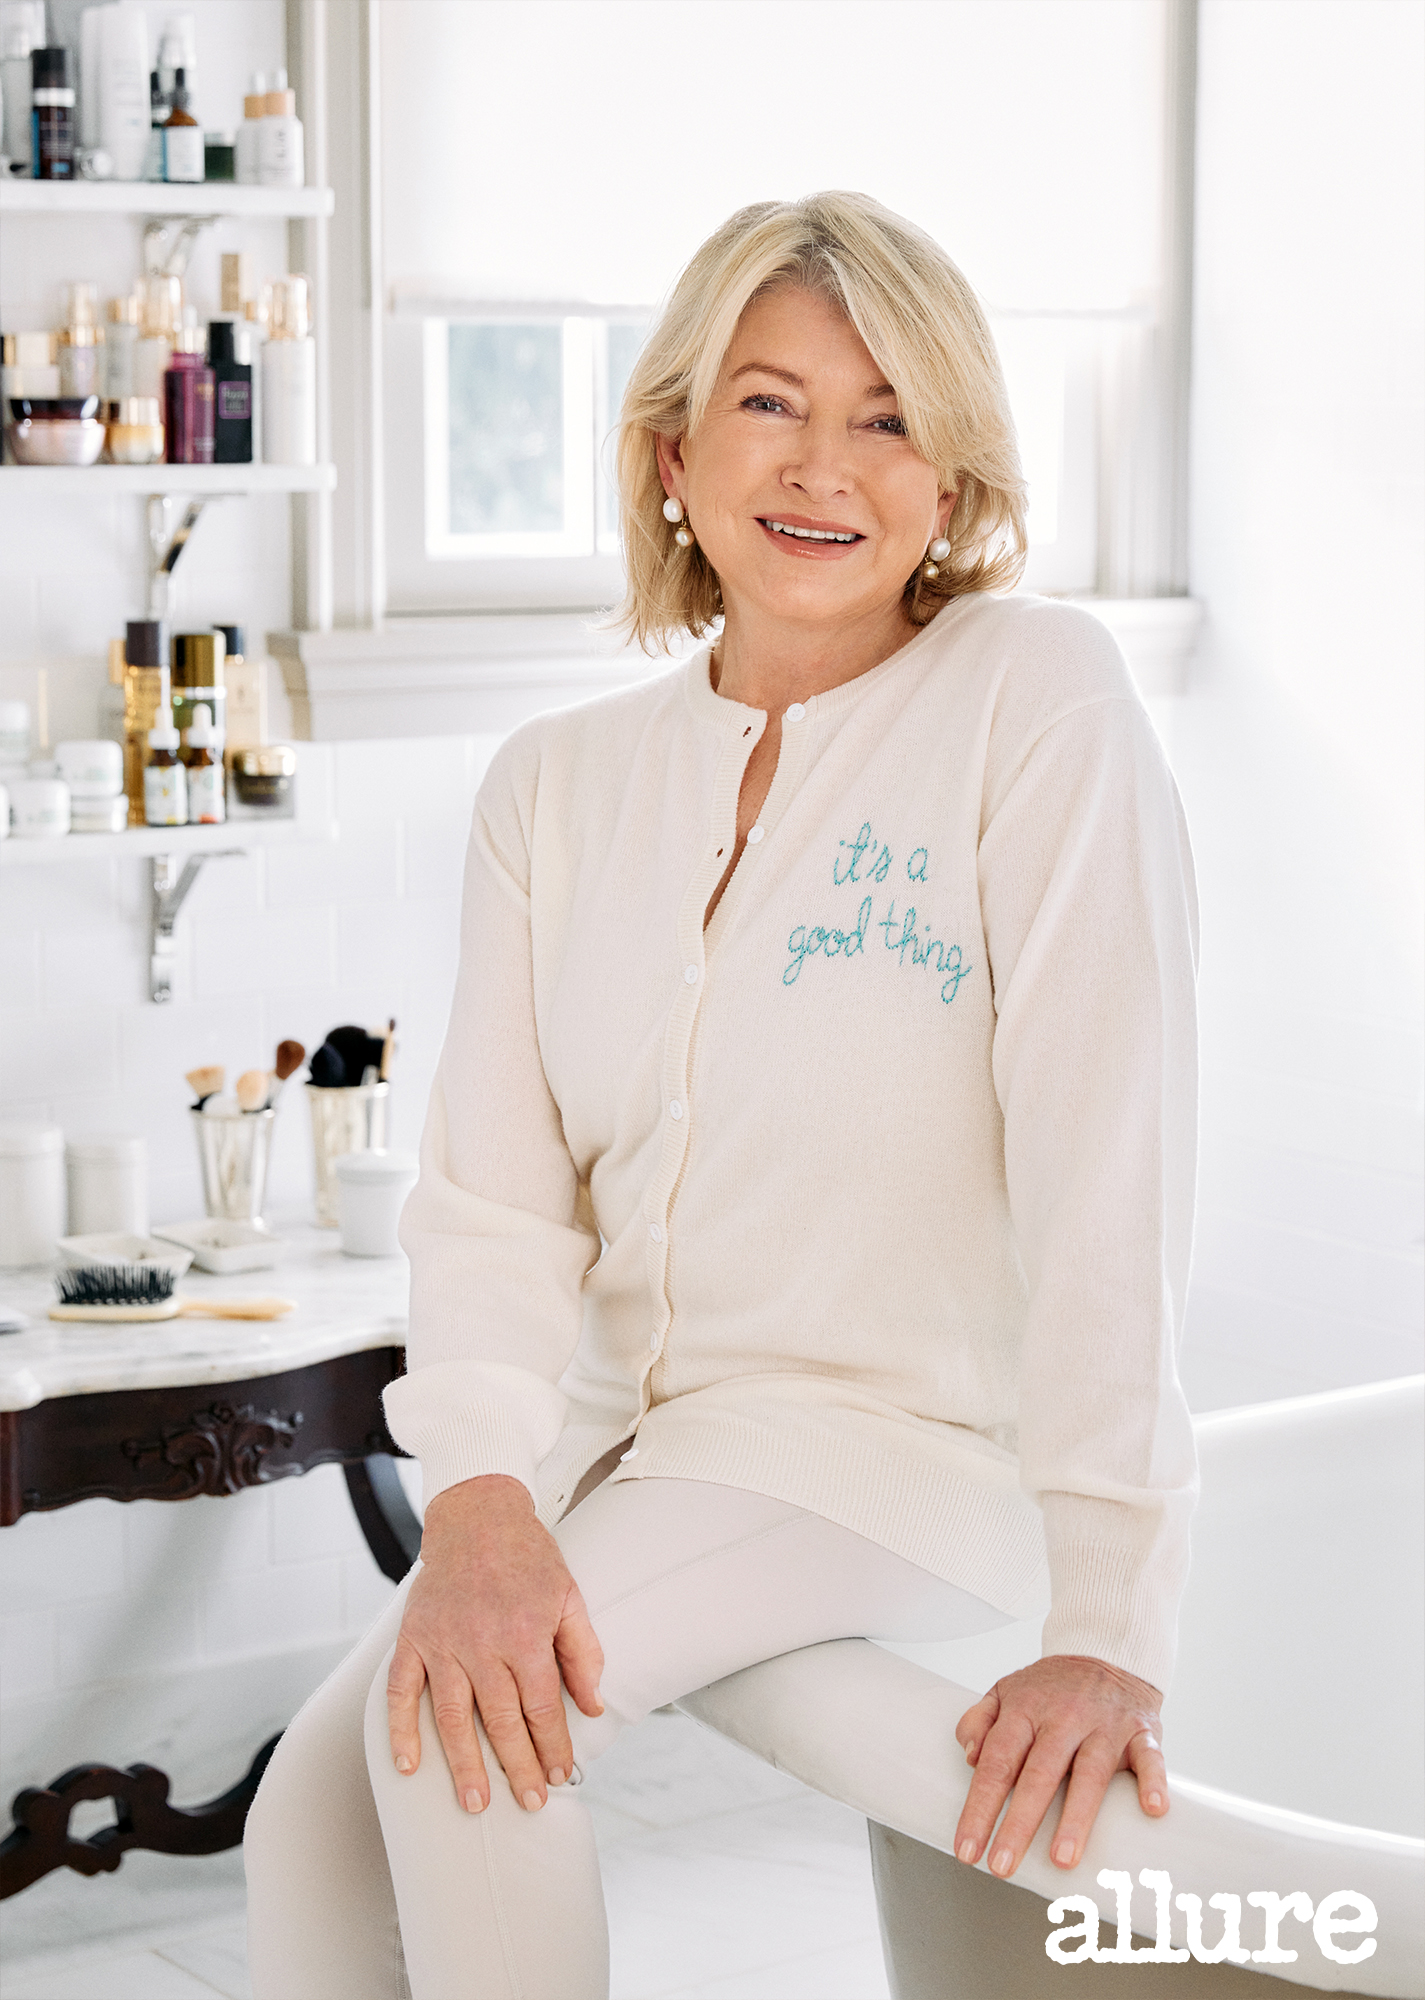 martha stewart in bathroom with beauty products